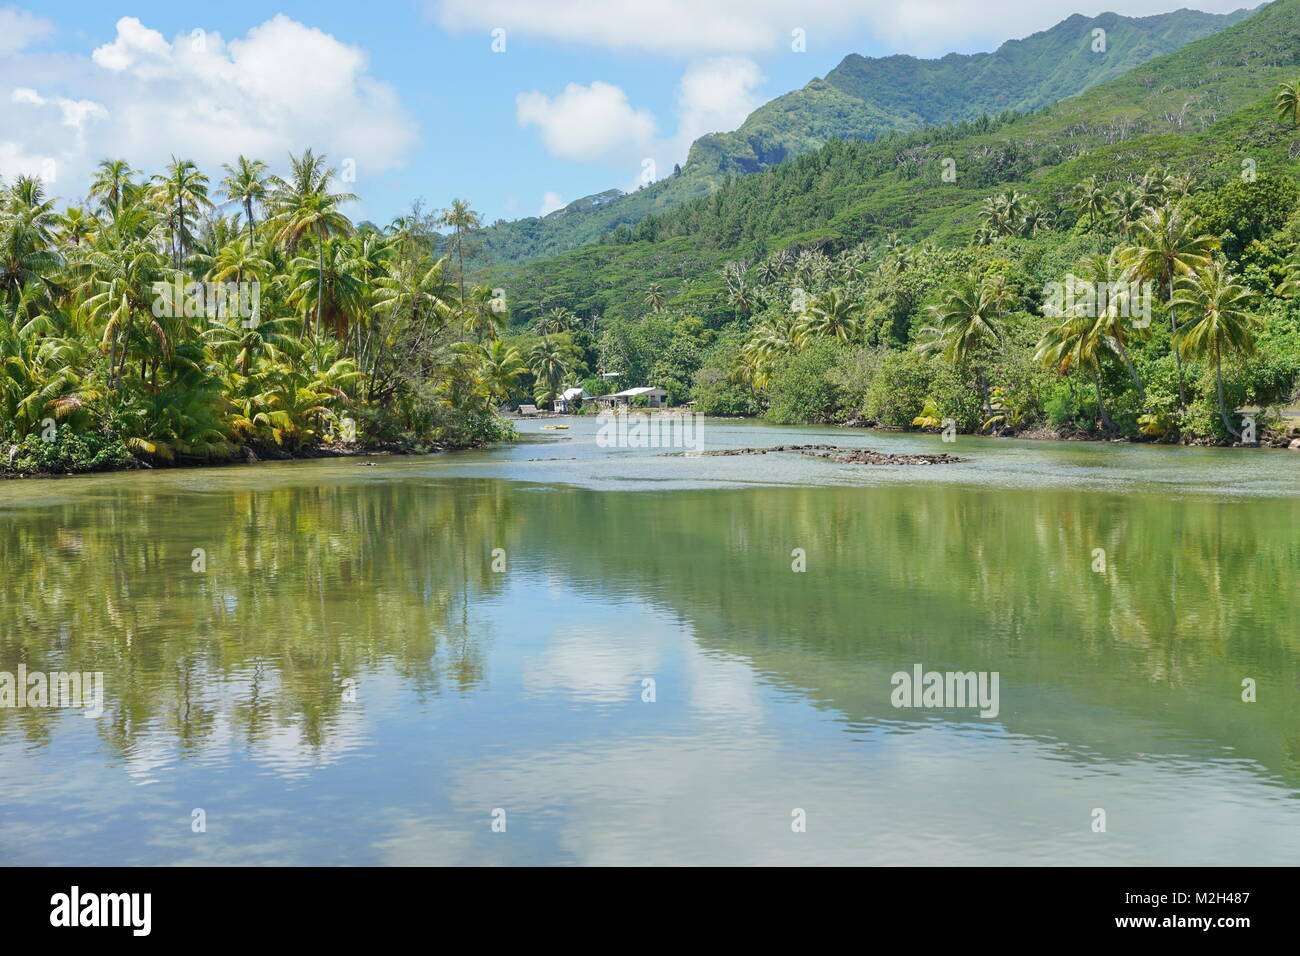 A channel with stone fish trap between the lake Fauna nui and the ocean, island of Huahine, South Pacific, French - Stock Image